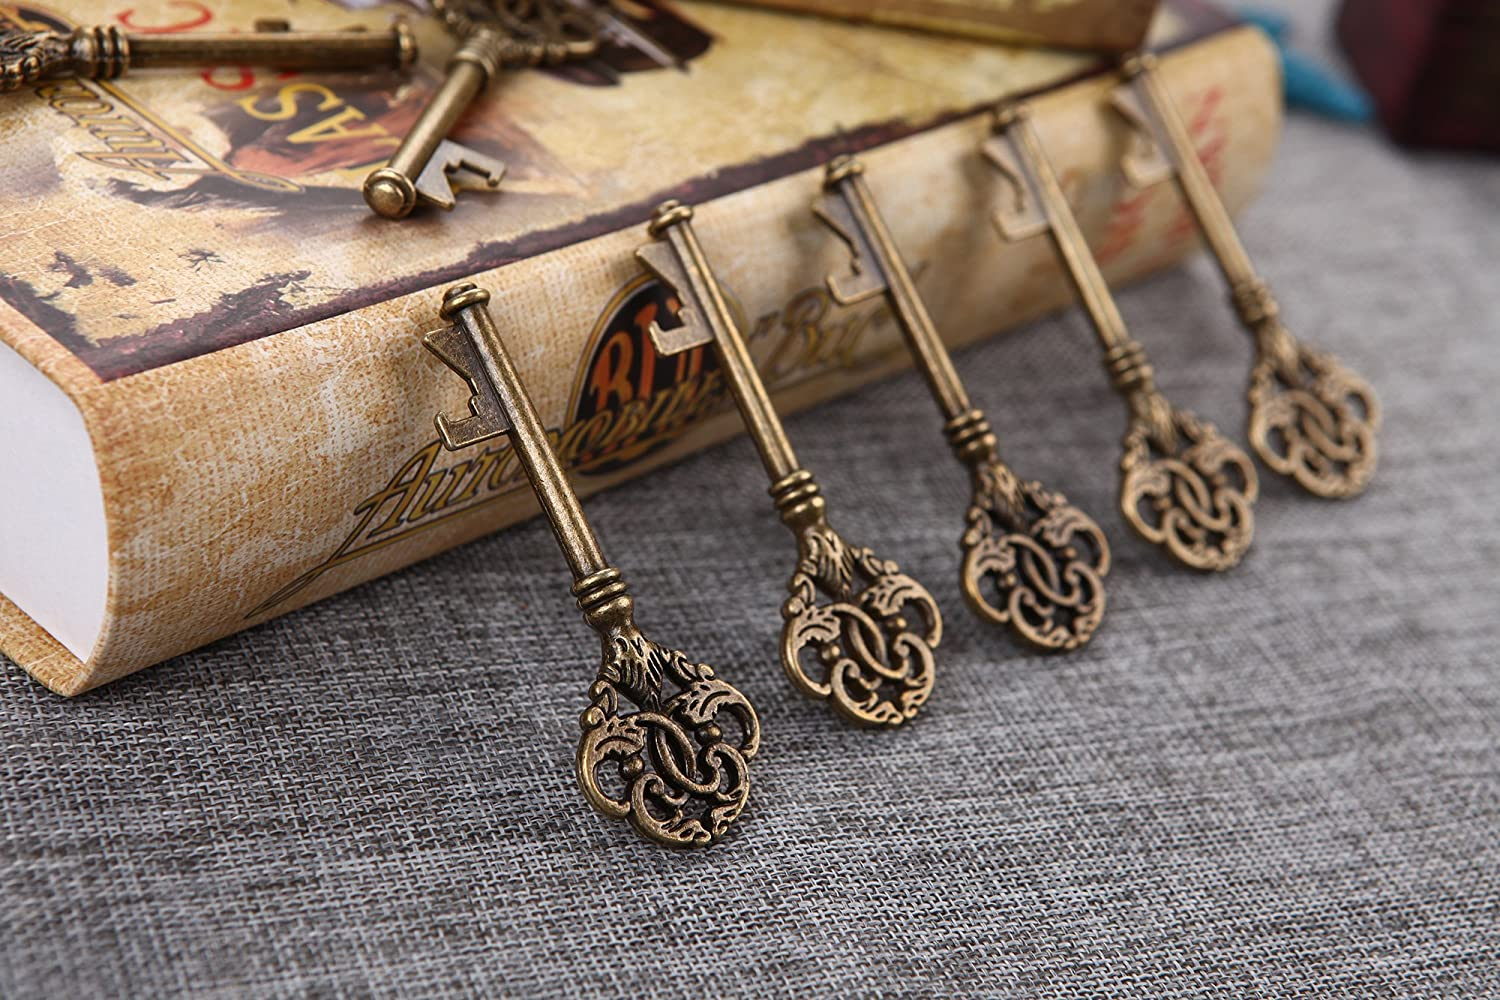 40 Max 79% OFF All stores are sold Large Crown Skeleton Key Openers Bottle Favor Rustic Wedding